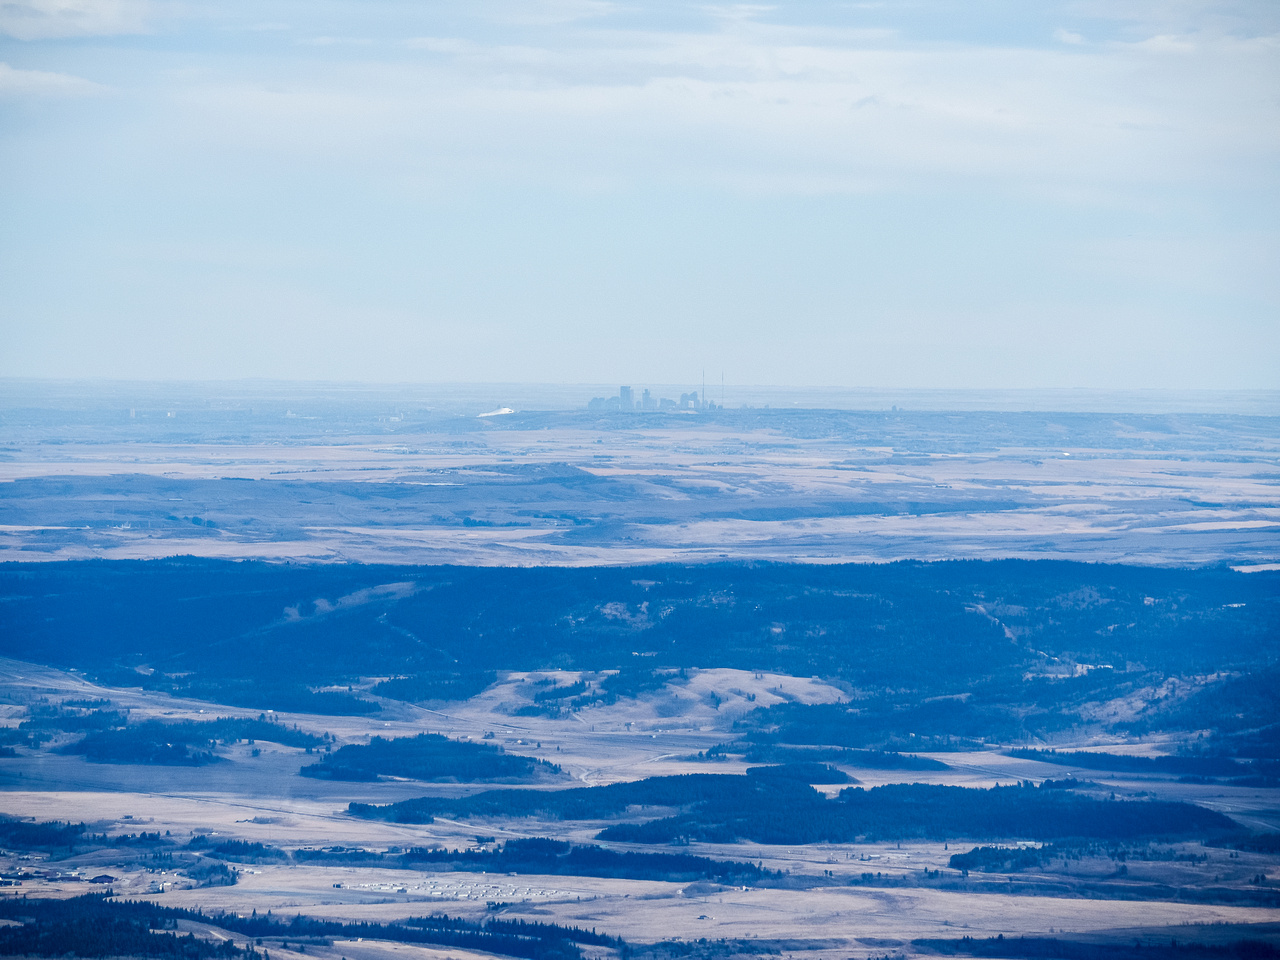 The city of Calgary is visible across the plains to the east.